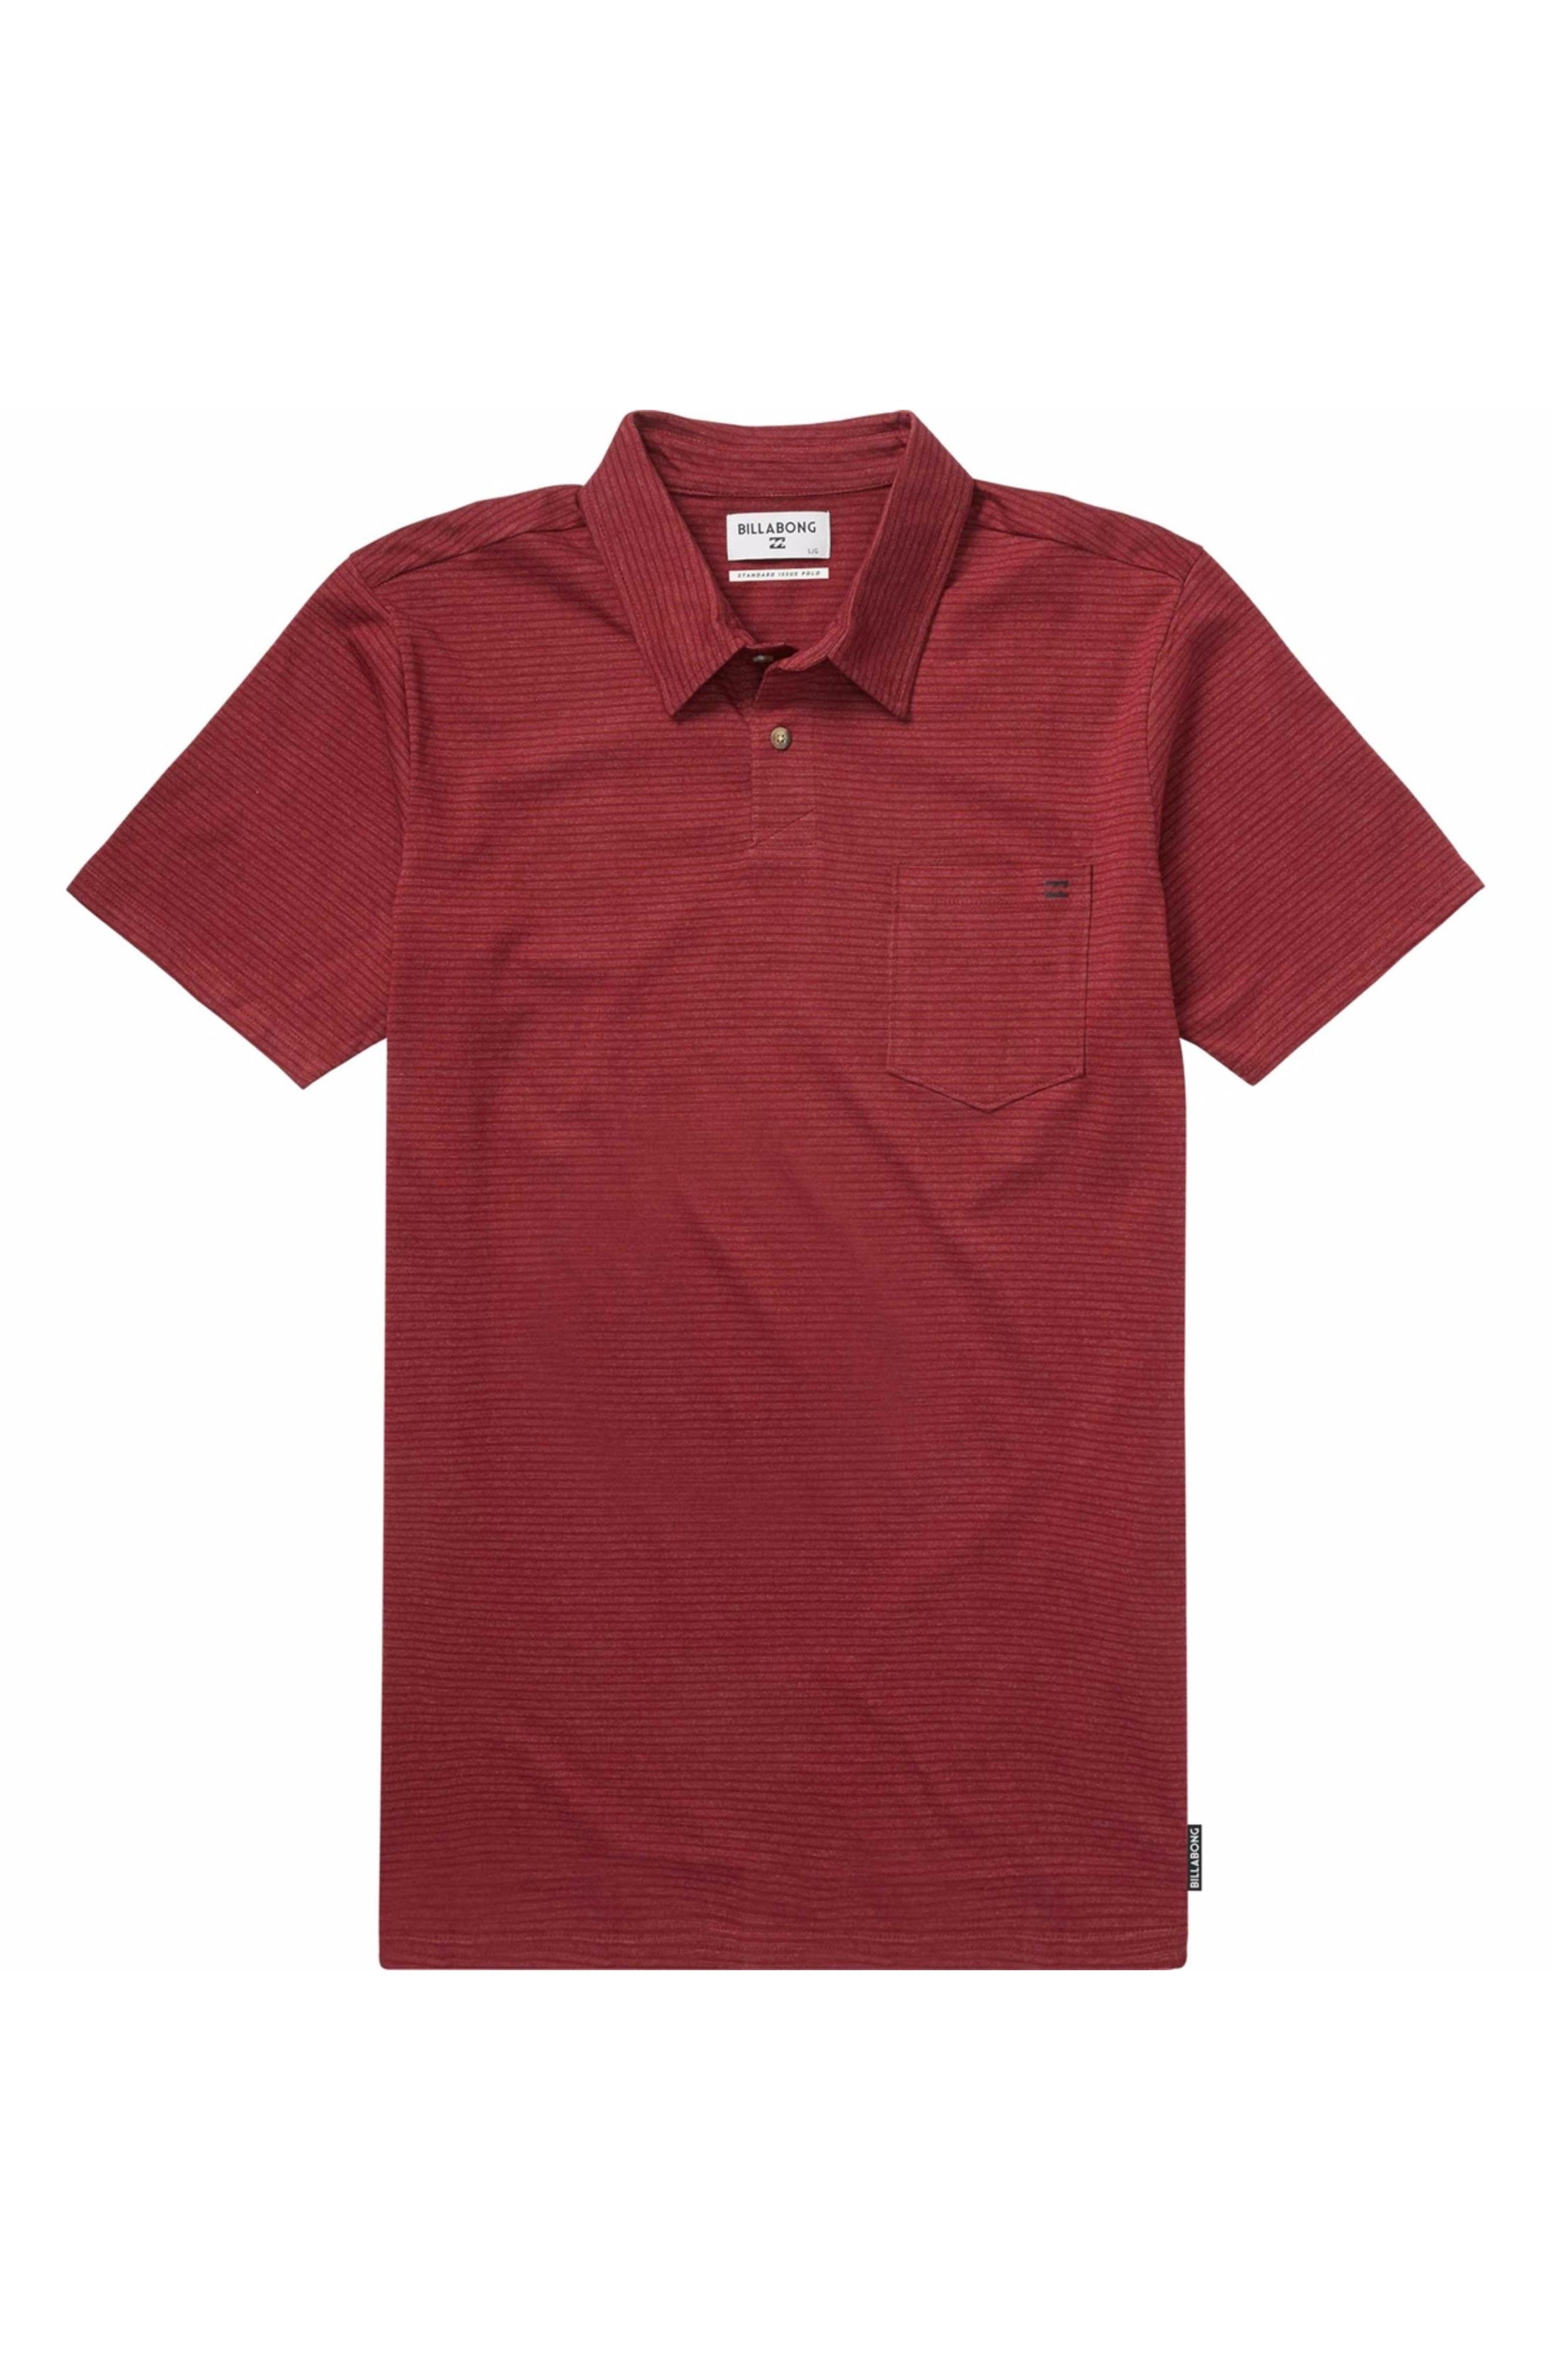 Alternate Image 1 Selected - Billabong Standard Issue Jersey Polo (Big Boys)